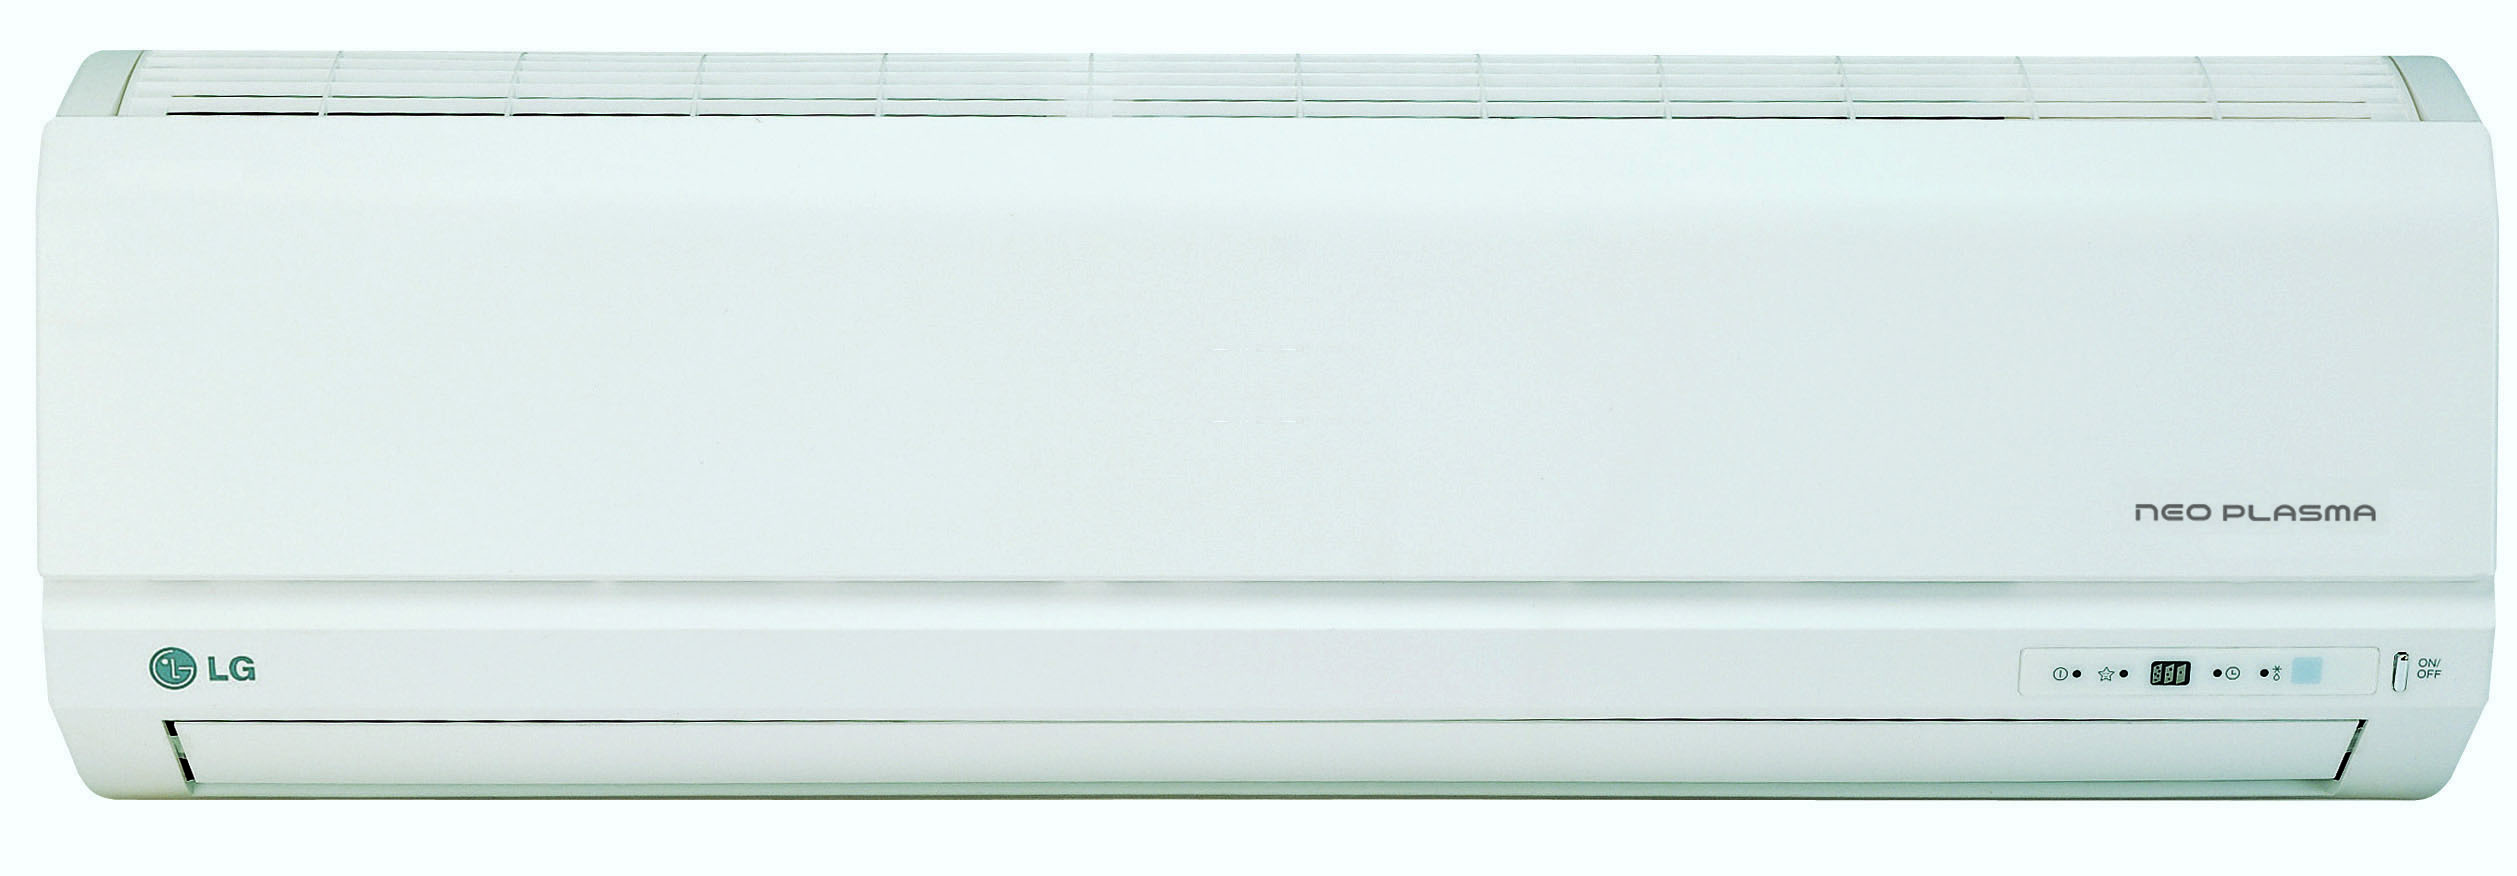 LG Multi F MU5M30 9.5kw Multi Split Inverter Air Conditioning System  #5B6970